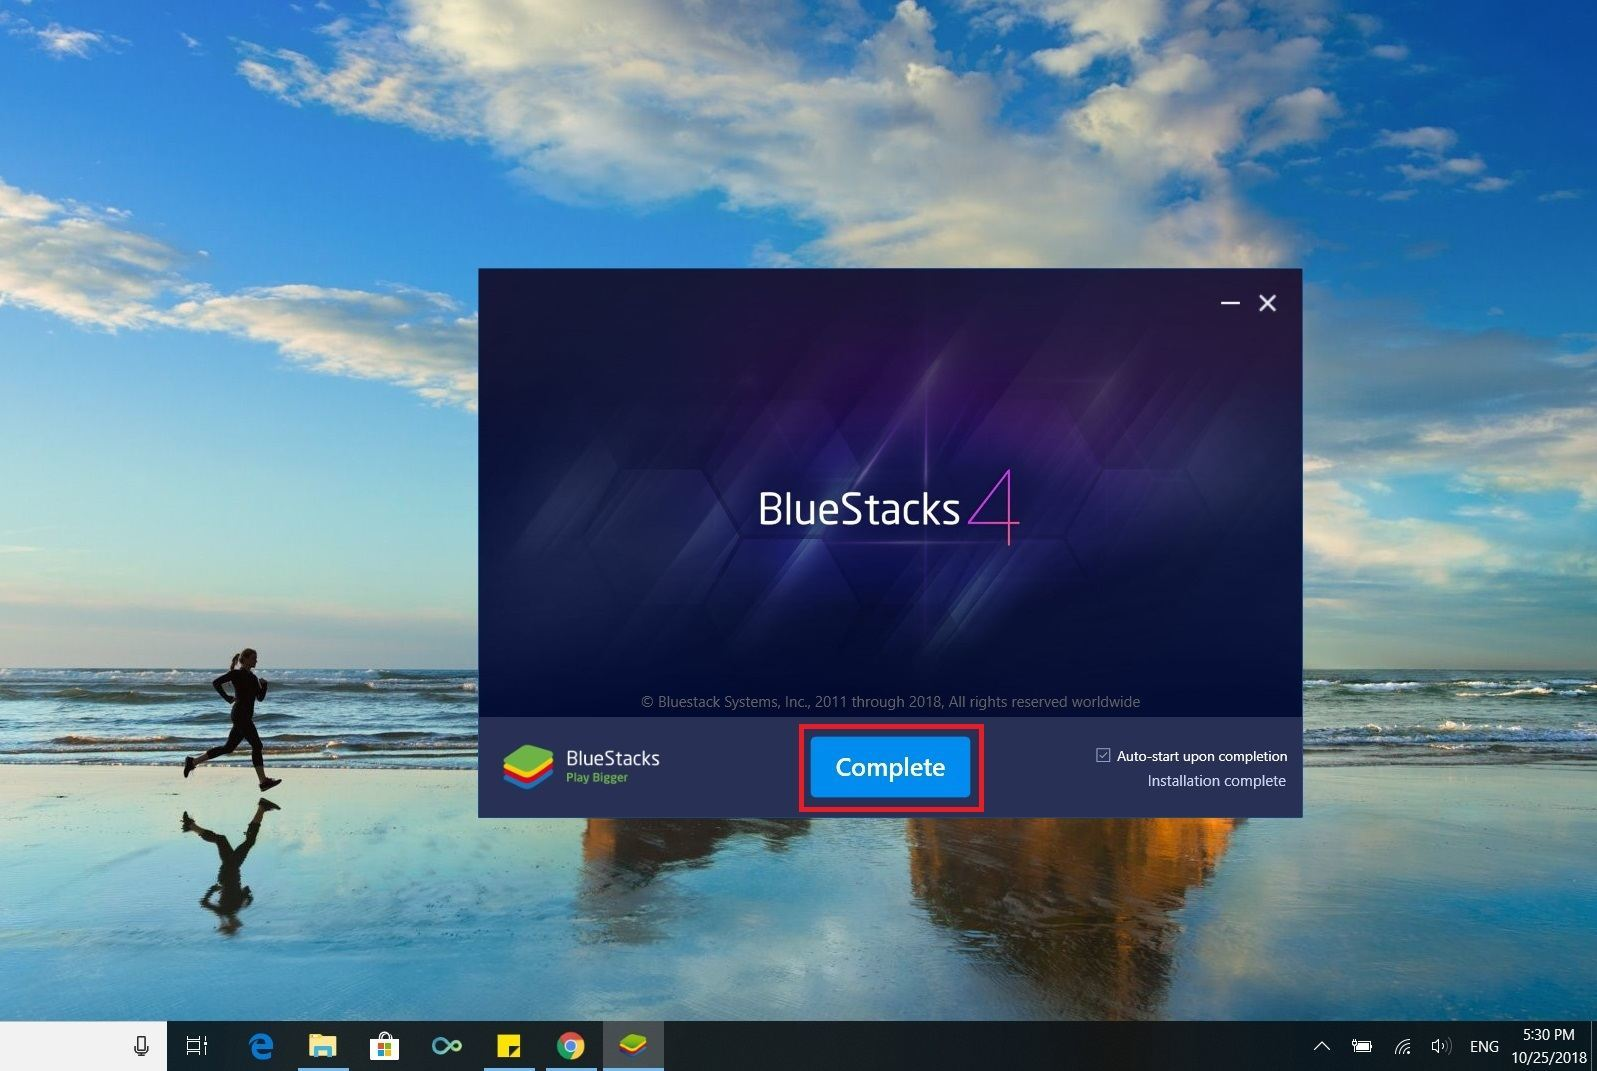 Open Bluestacks